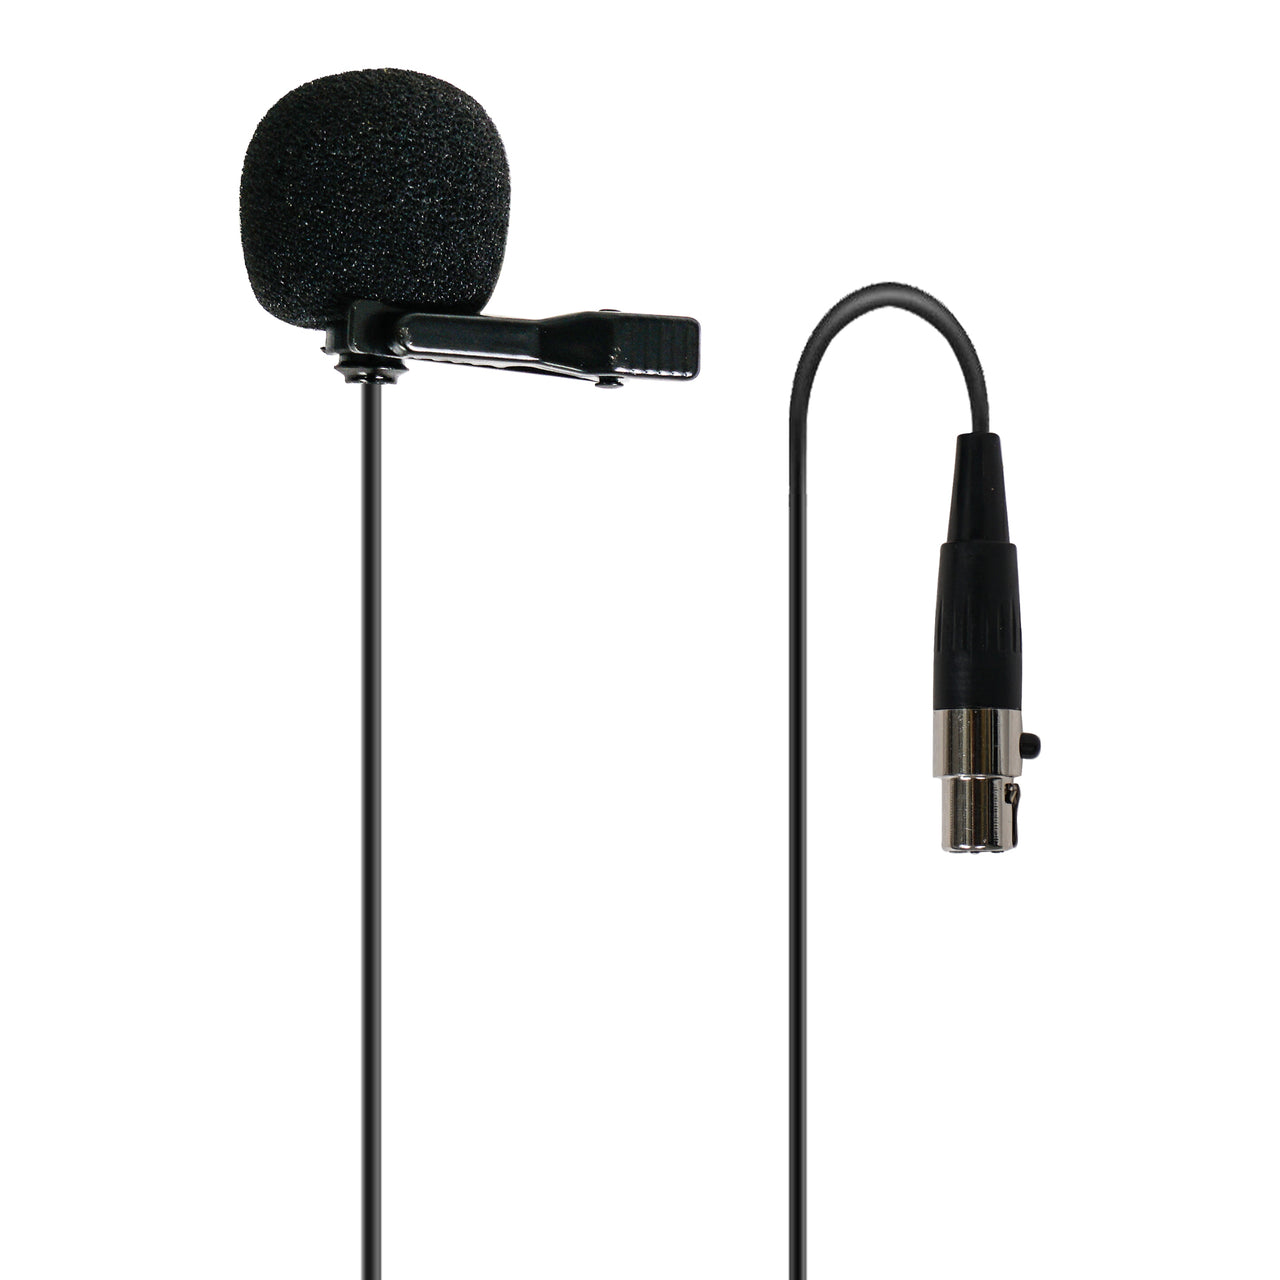 Lavalier Microphone for NESO Series & SWM20-U2 Series Wireless Microphone Systems (NESO-LV)